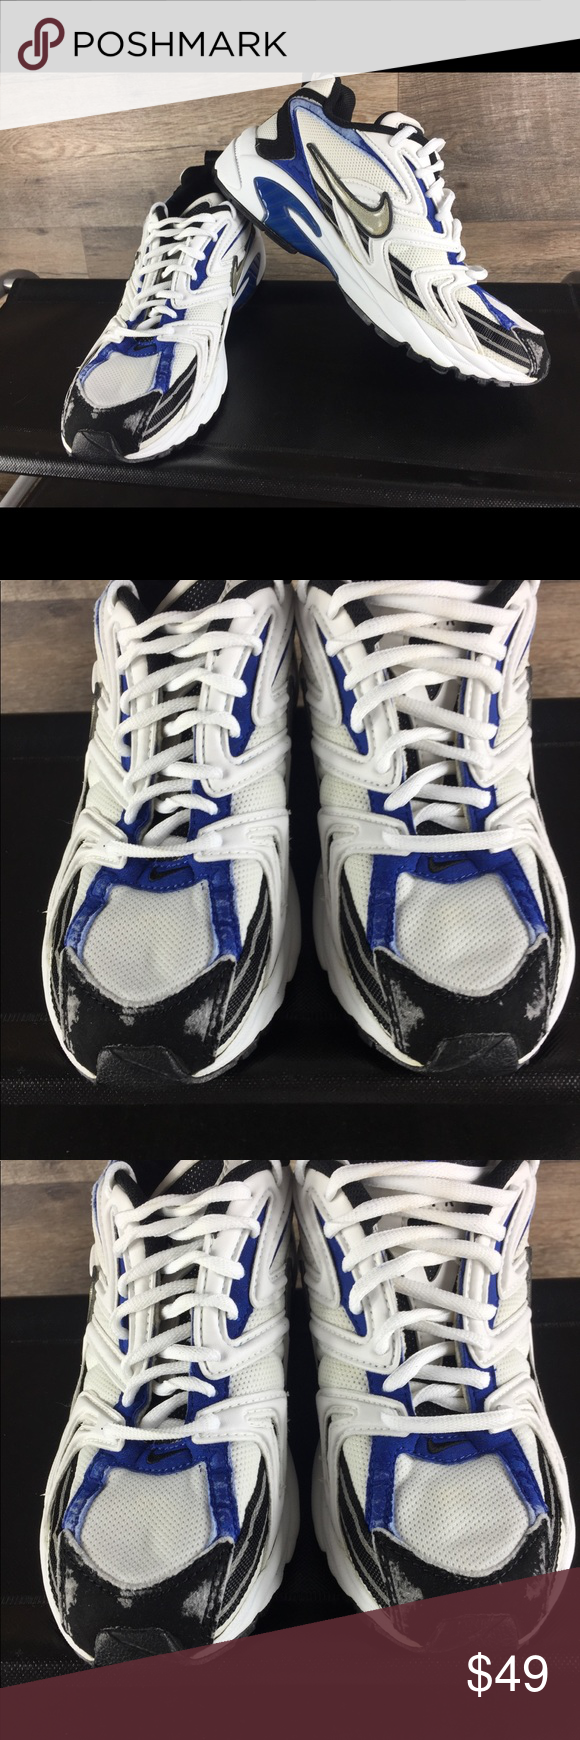 low cost b9ecc 9499e Rare Vintage Nike Air BRS 1000 Running shoes Good condition These shoes  have damage see pic Damage was caused by washing Other then that these shoes  are in ...